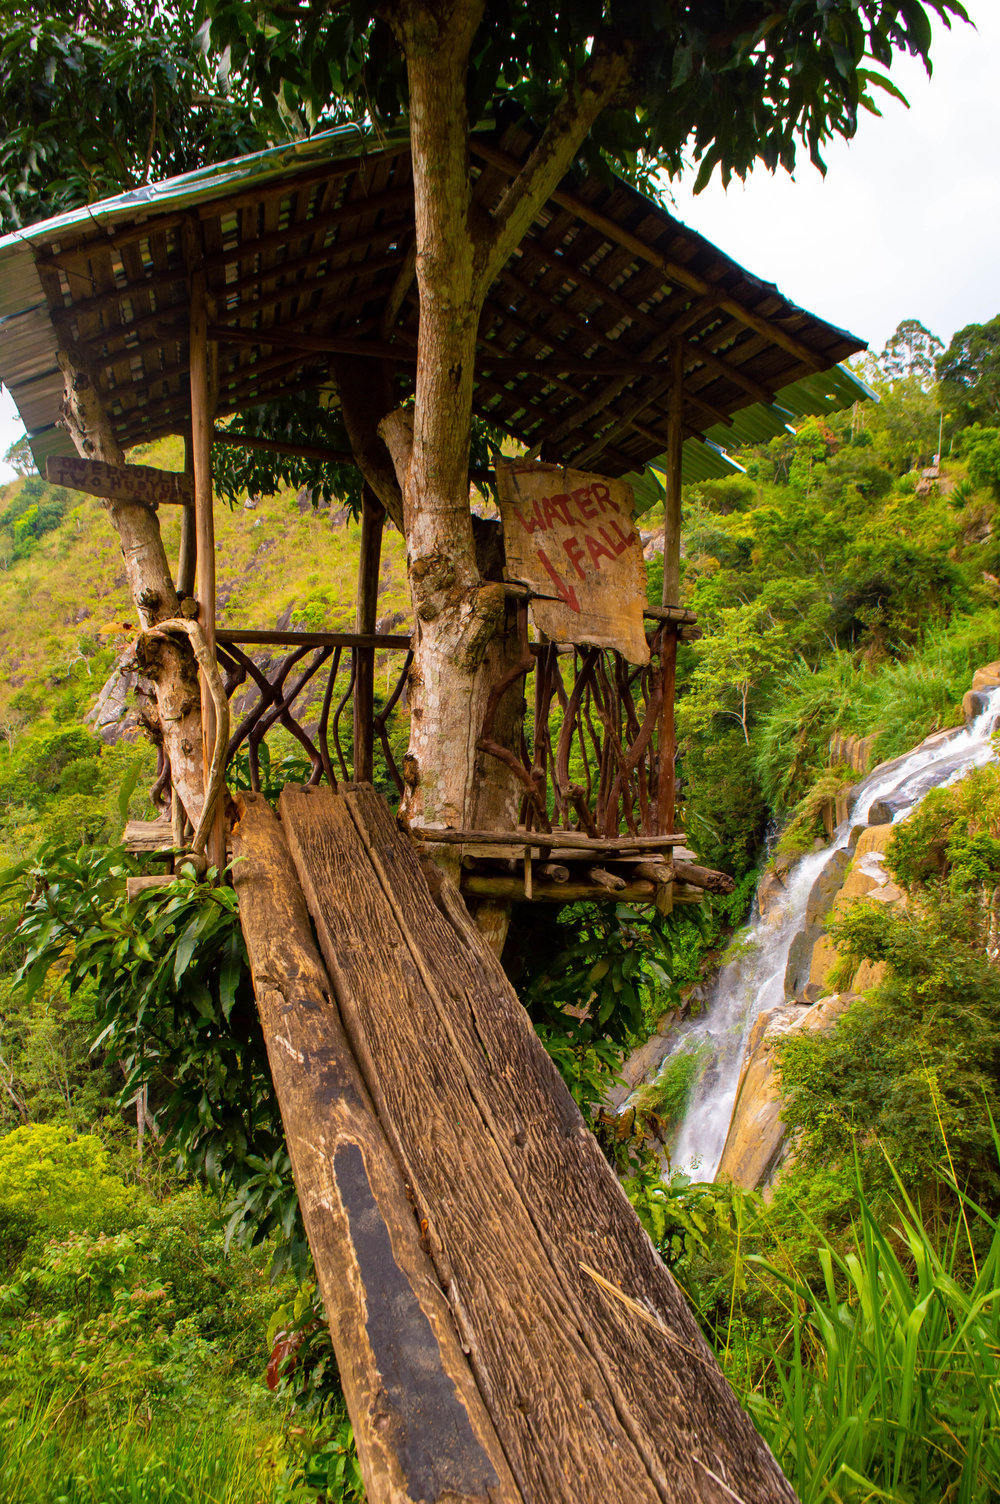 A cute tree house with waterfall views near where you will be asked to pay a 200LKR entrance fee.